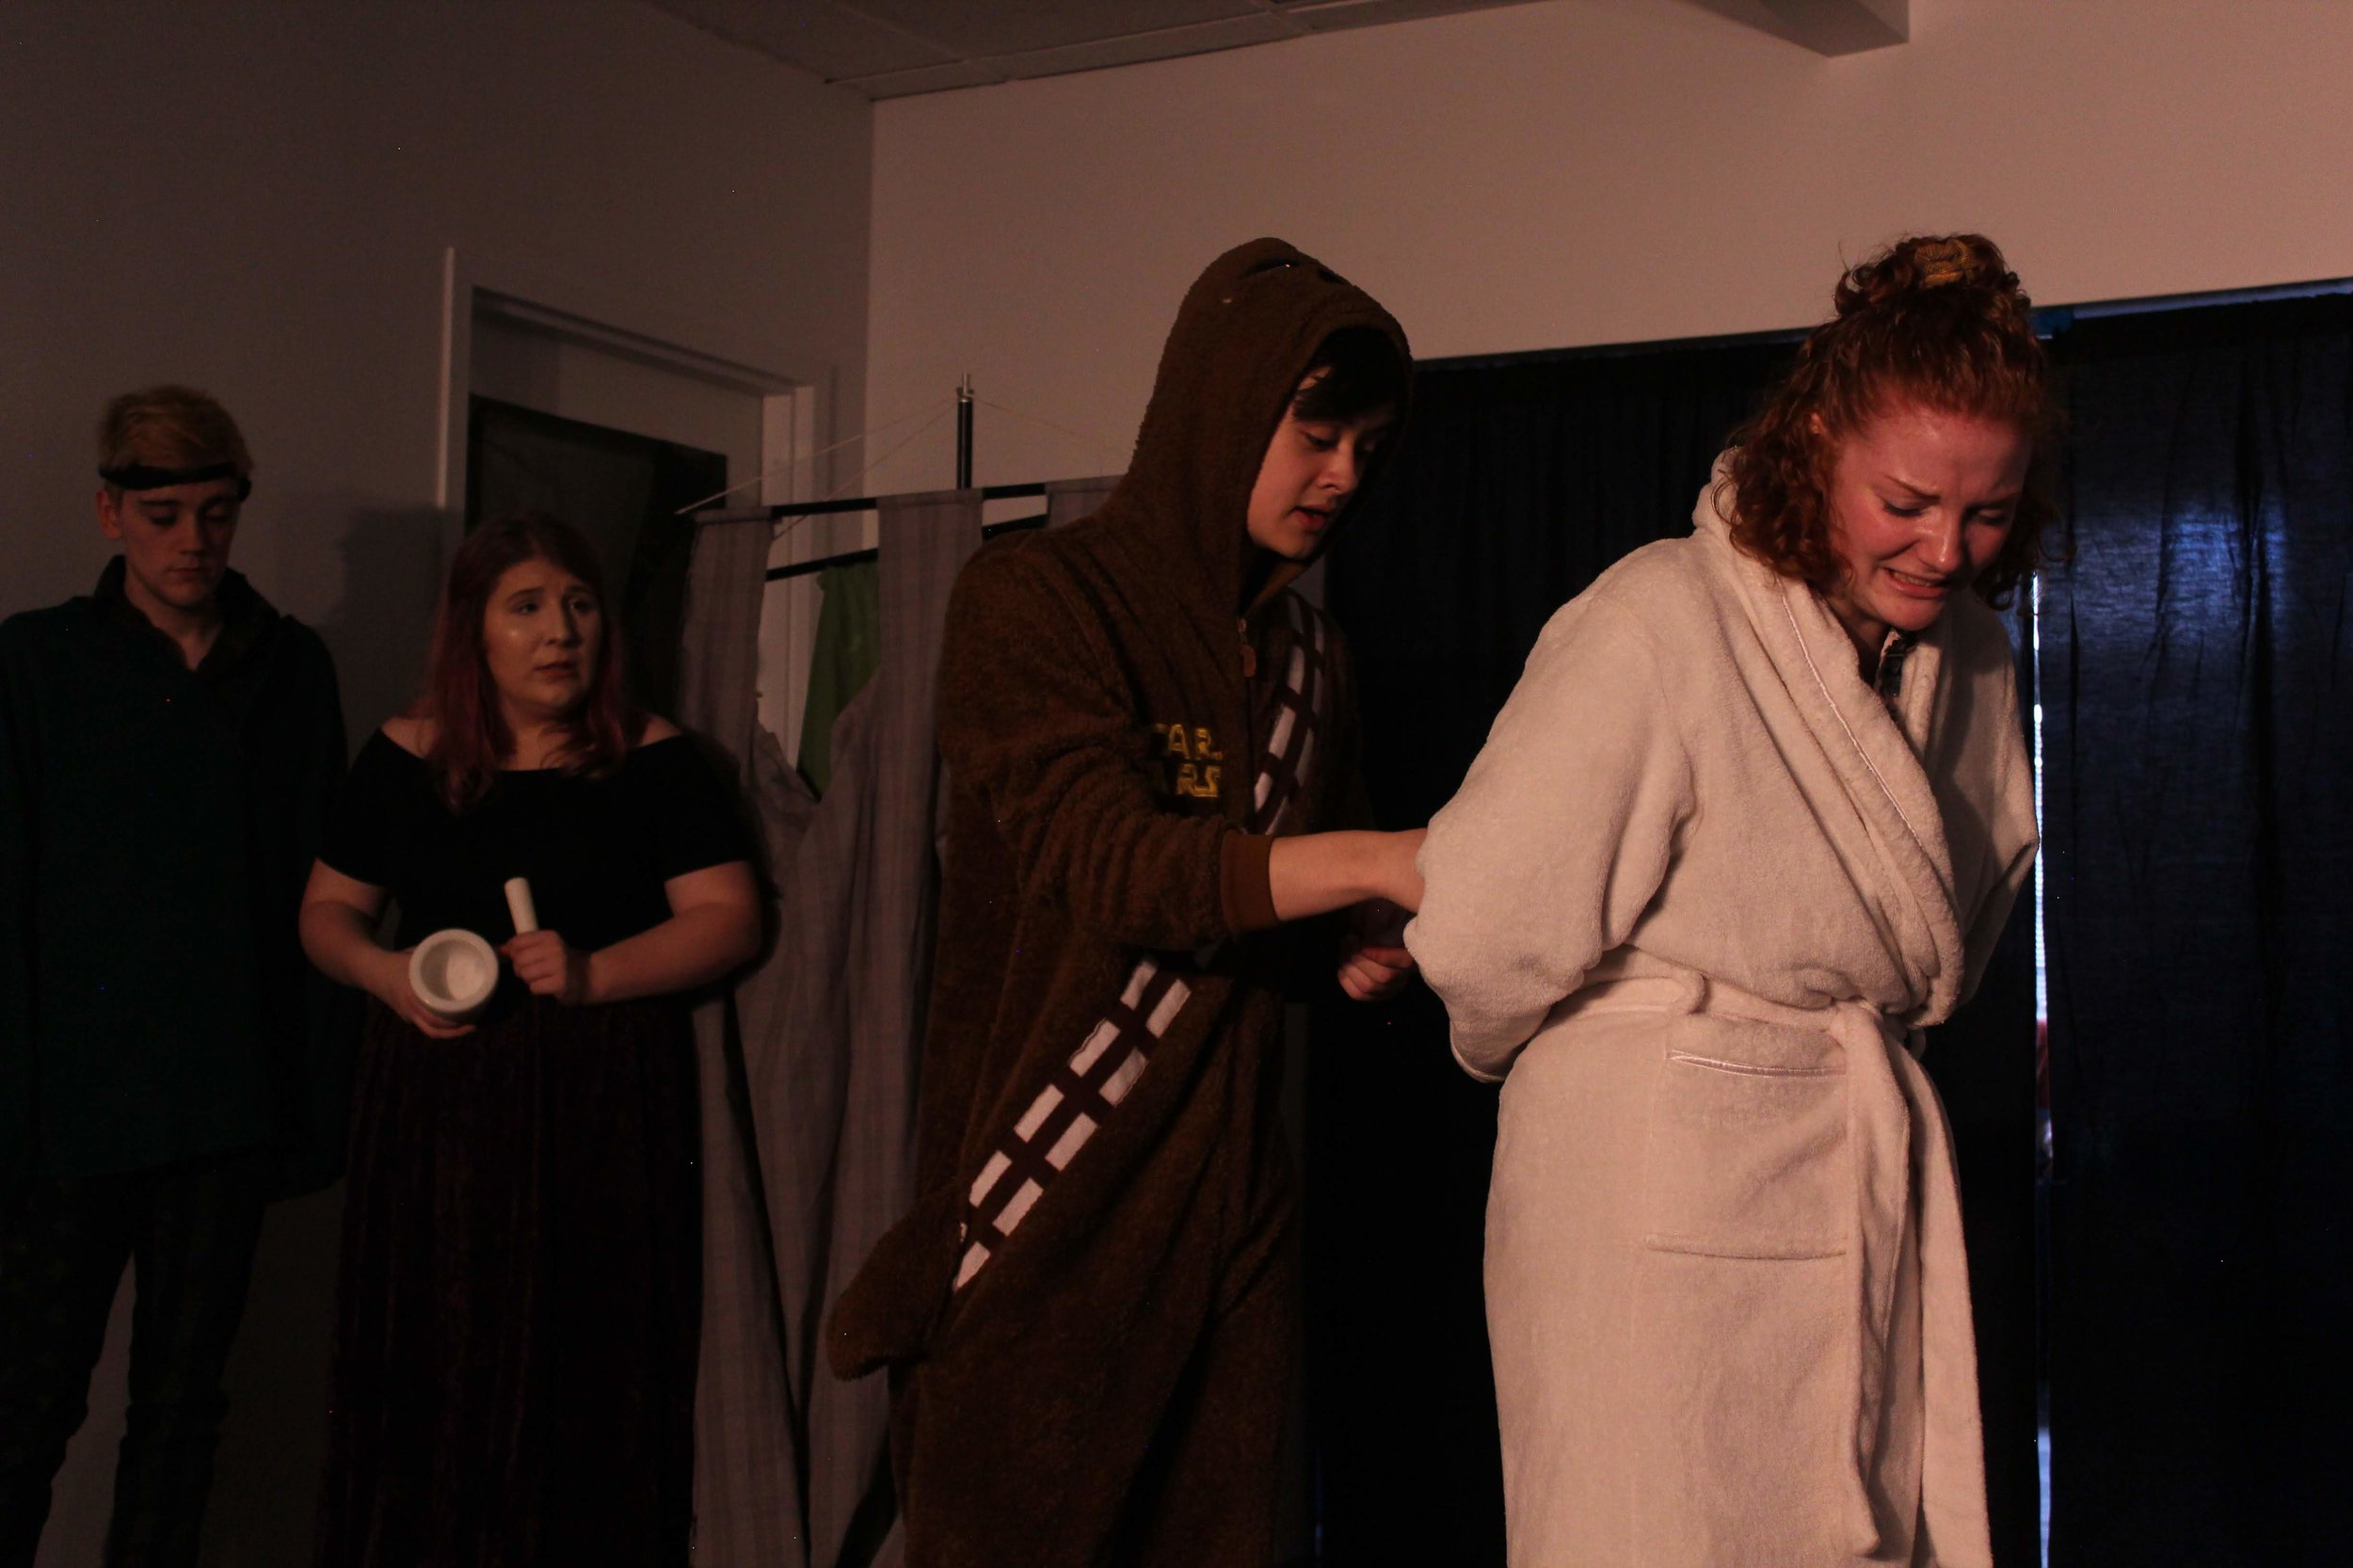 "(L to R) Jack Harding, Sarah Smagala, Alex Grimm, and Leah Sandow in ""Knight of the Burning Pestle"""